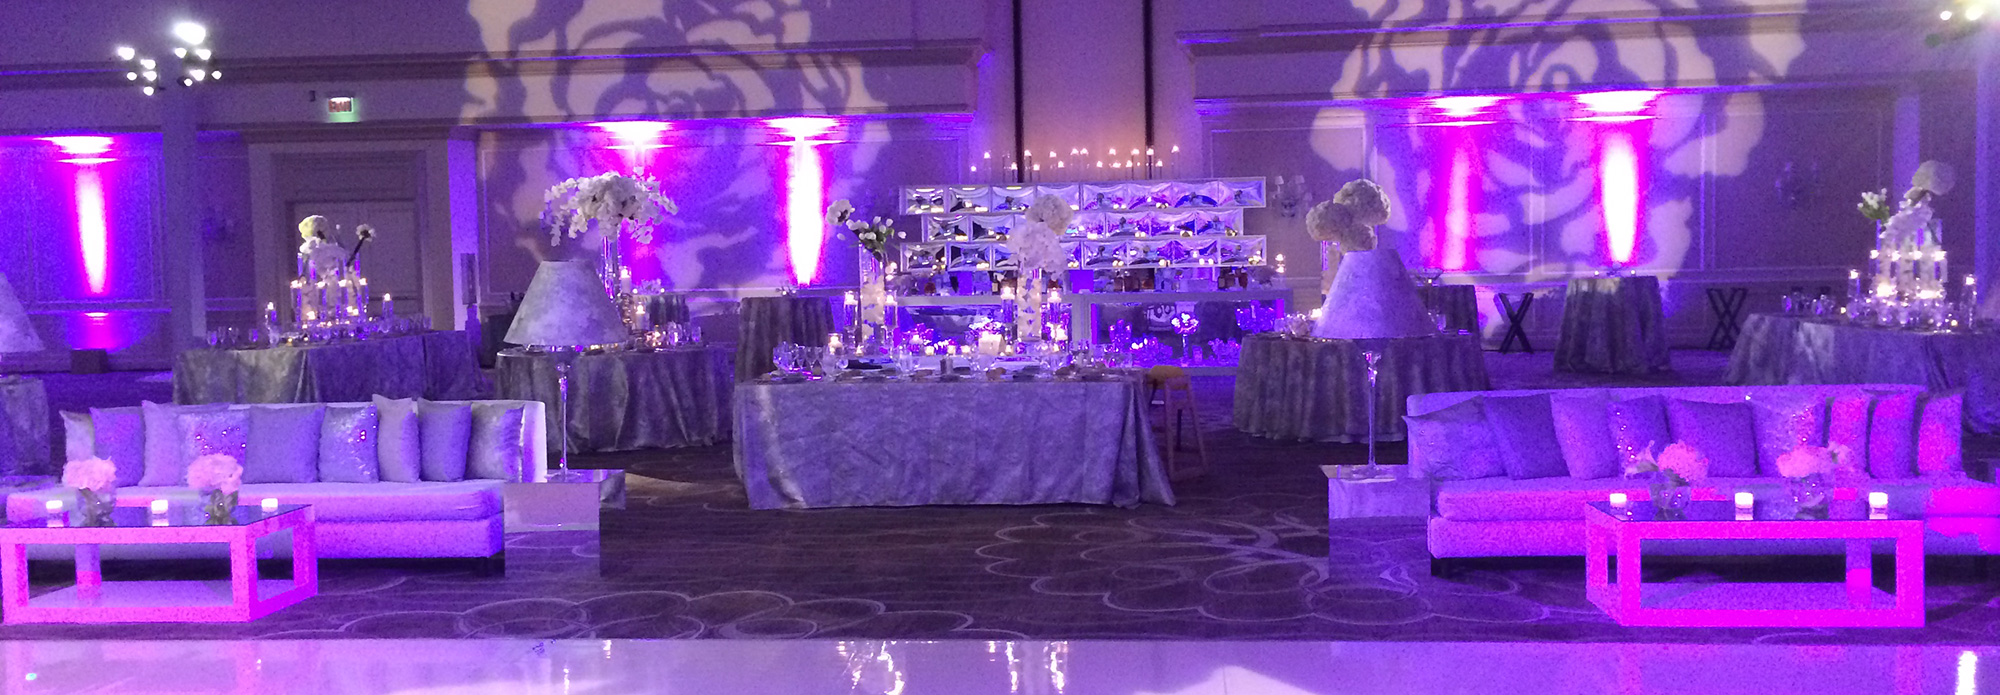 Lounge Style Wedding Reception